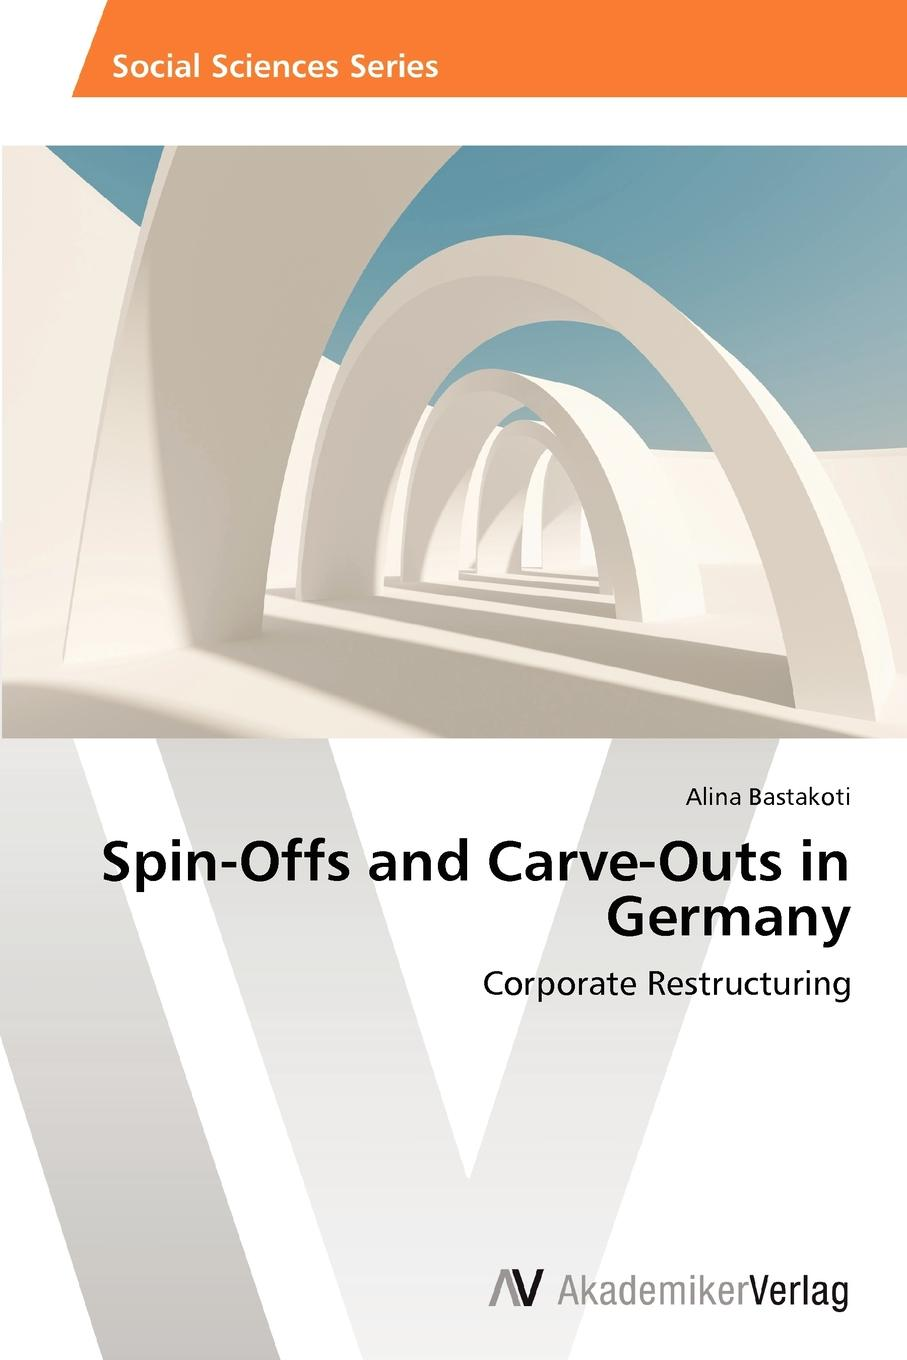 Фото - Bastakoti Alina Spin-Offs and Carve-Outs in Germany around the world in cut outs